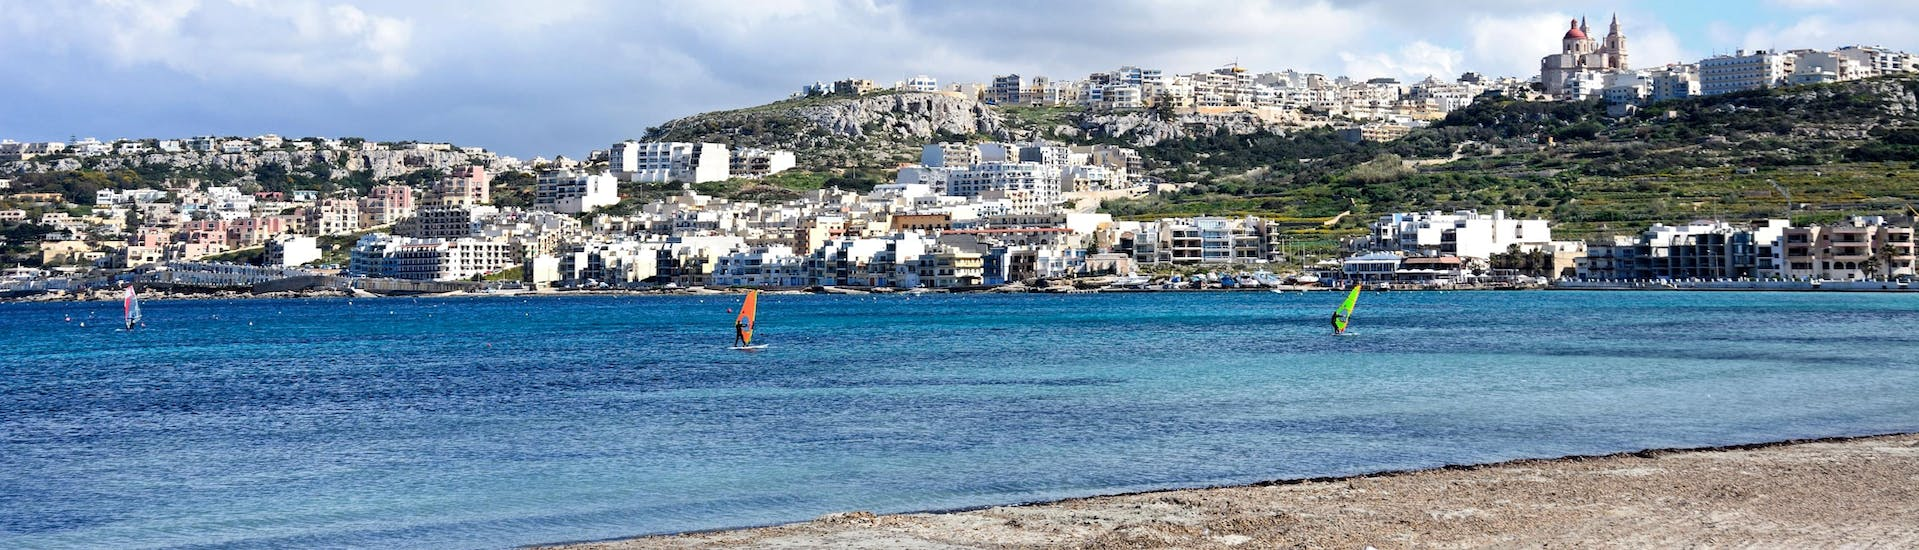 A young woman surfing in the clear blue waters of the surfing and SUP hotspot of Malta.